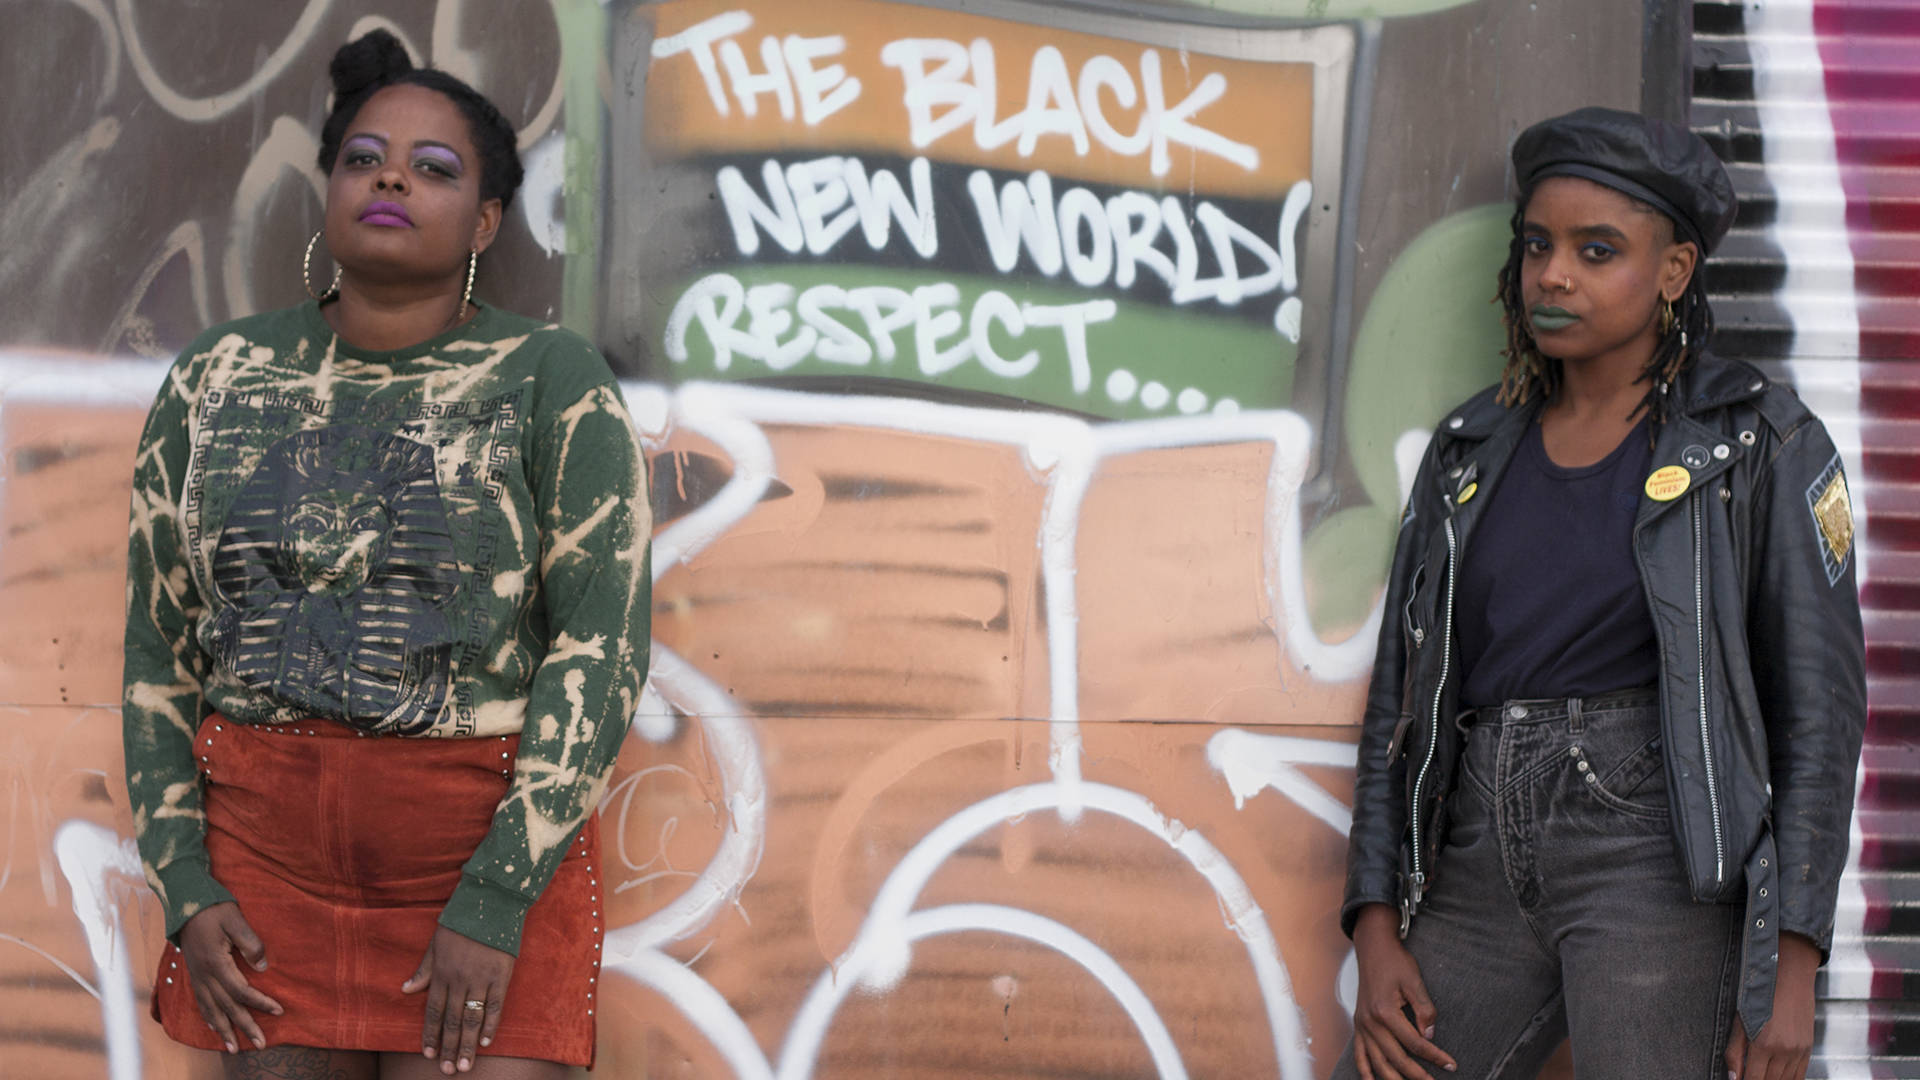 Shawna Shante Scroggins (left) and Jade Ariana Fair envision The Multivers is Illuminated as a way to celebrate black and brown punk and experimental musicians. Jeffie Freeman